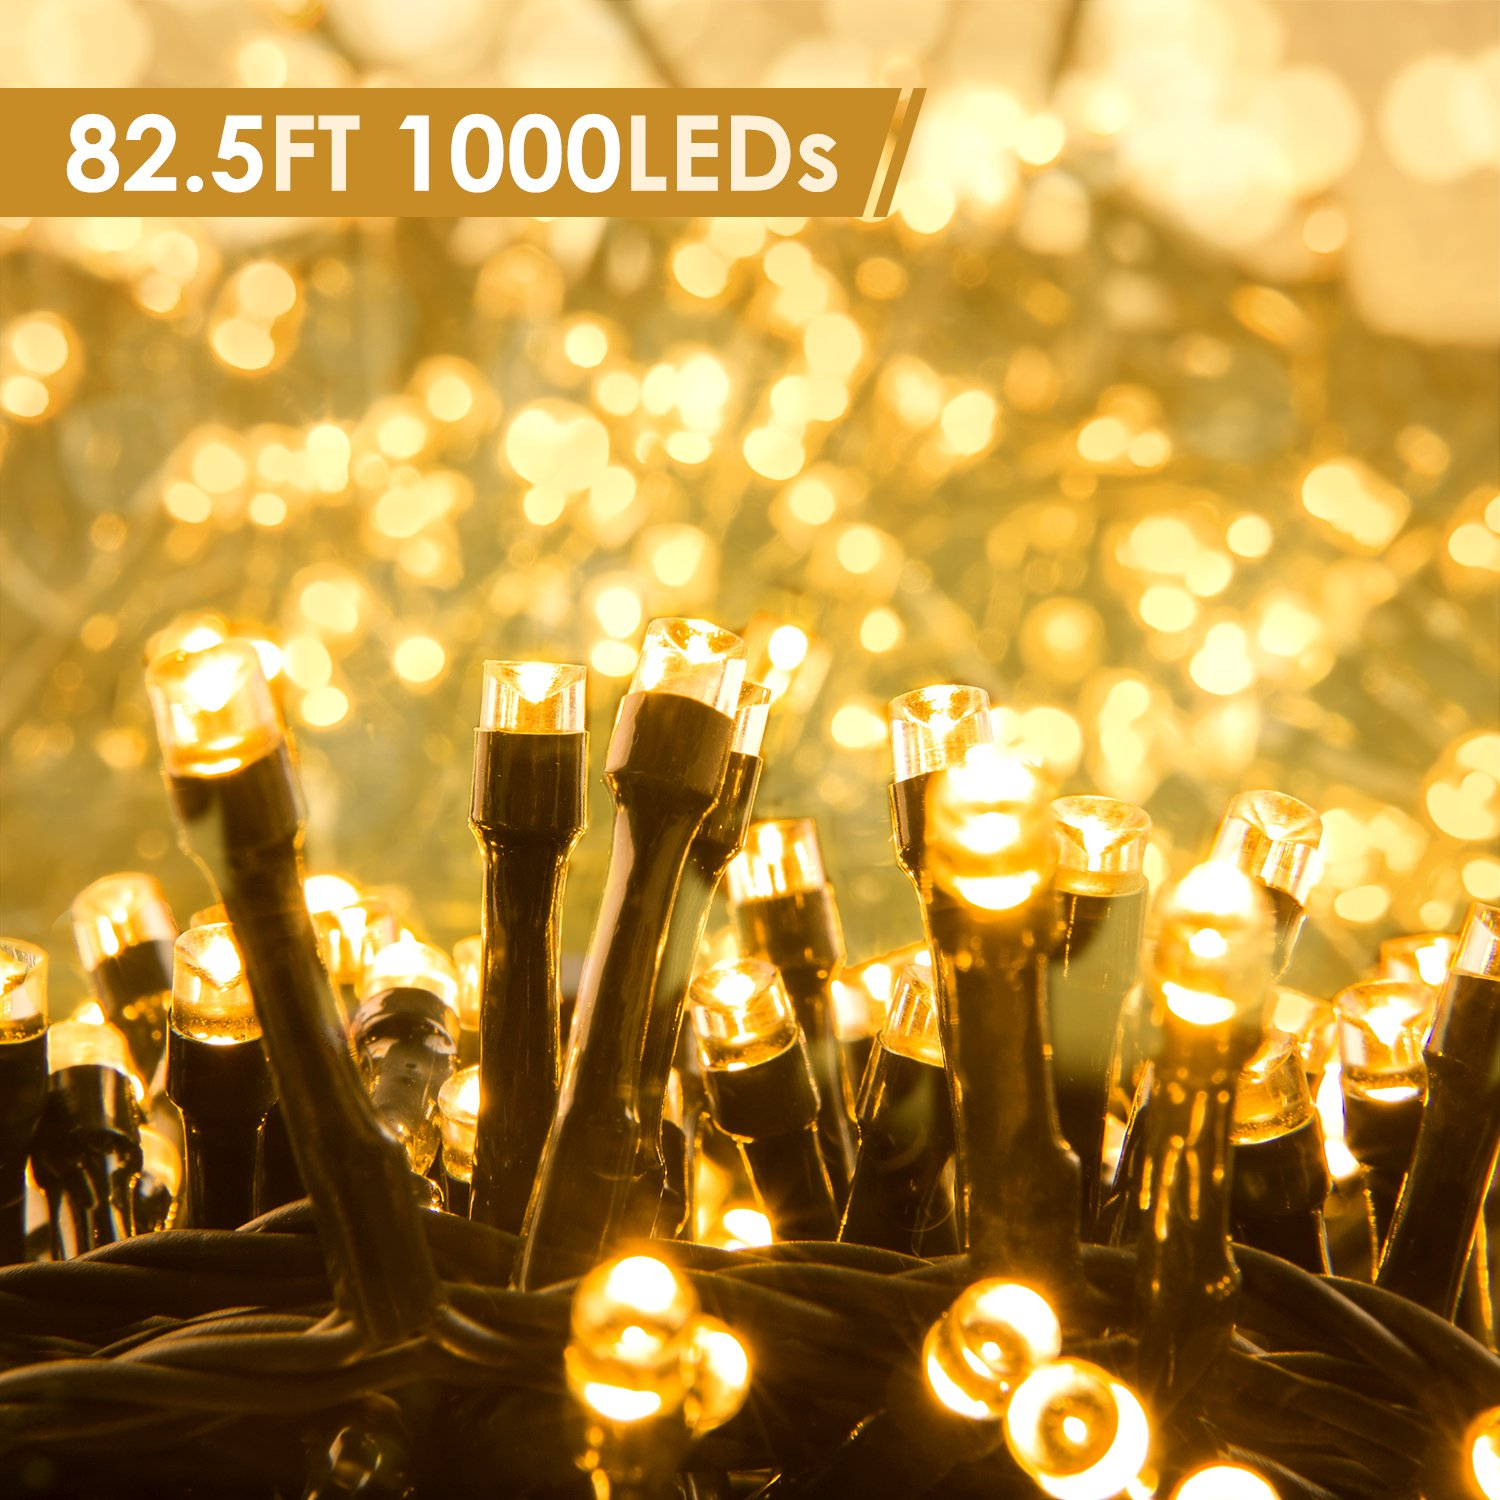 Quntis LED String Lights, Indoor Outdoor 82.5ft 1000 LEDs 29V Warm White LED Fairy Starry Strip Lights Decor for Home Bedroom Kitchen Garden Patio Wedding Party Holiday Christmas, UL588 certified